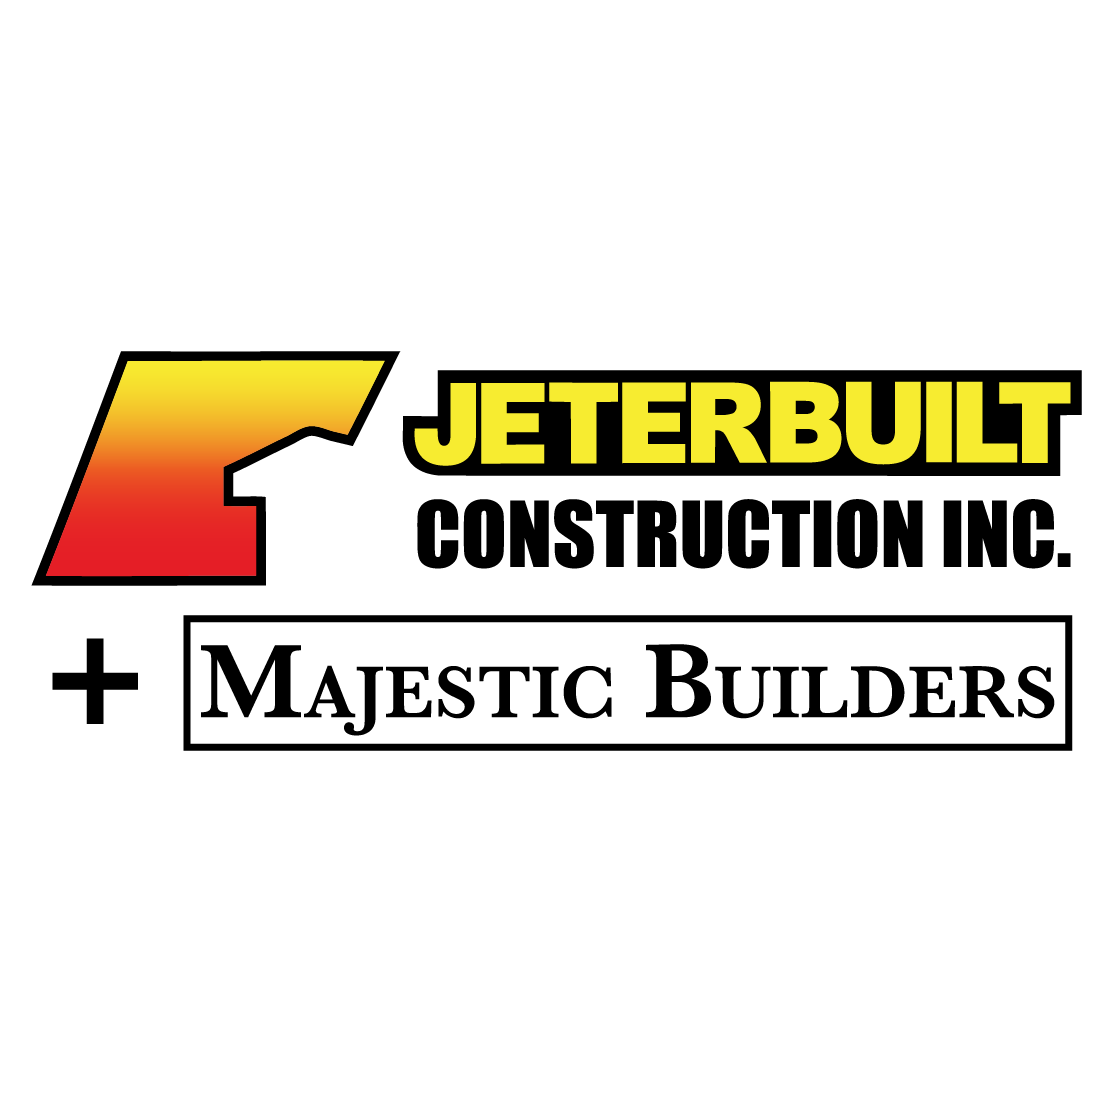 Jeterbuilt Construction Inc